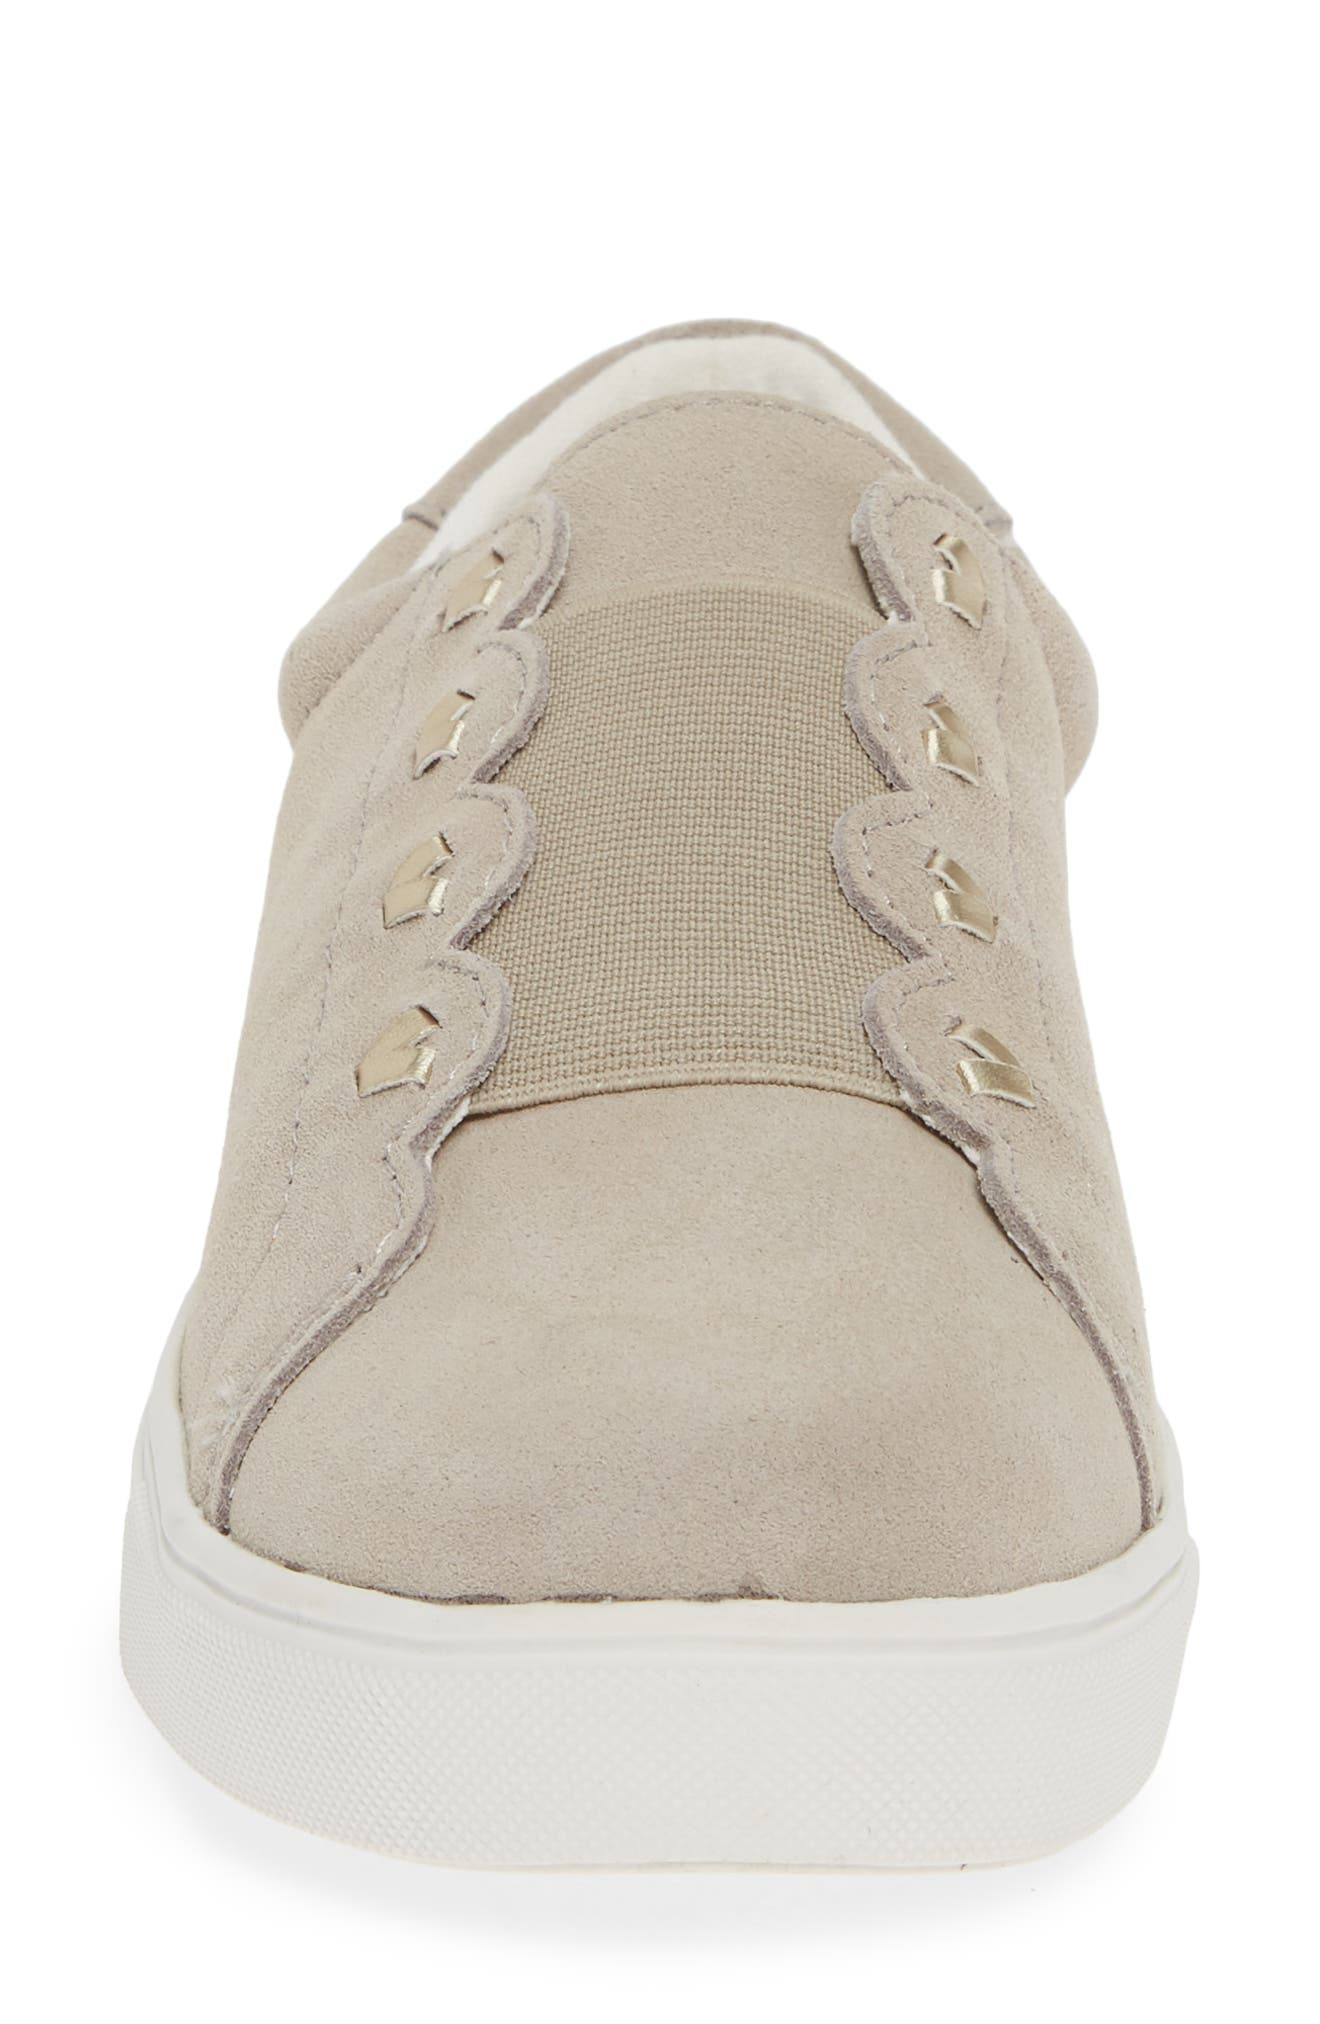 Rye Sneaker,                             Alternate thumbnail 4, color,                             DOVE GREY SUEDE